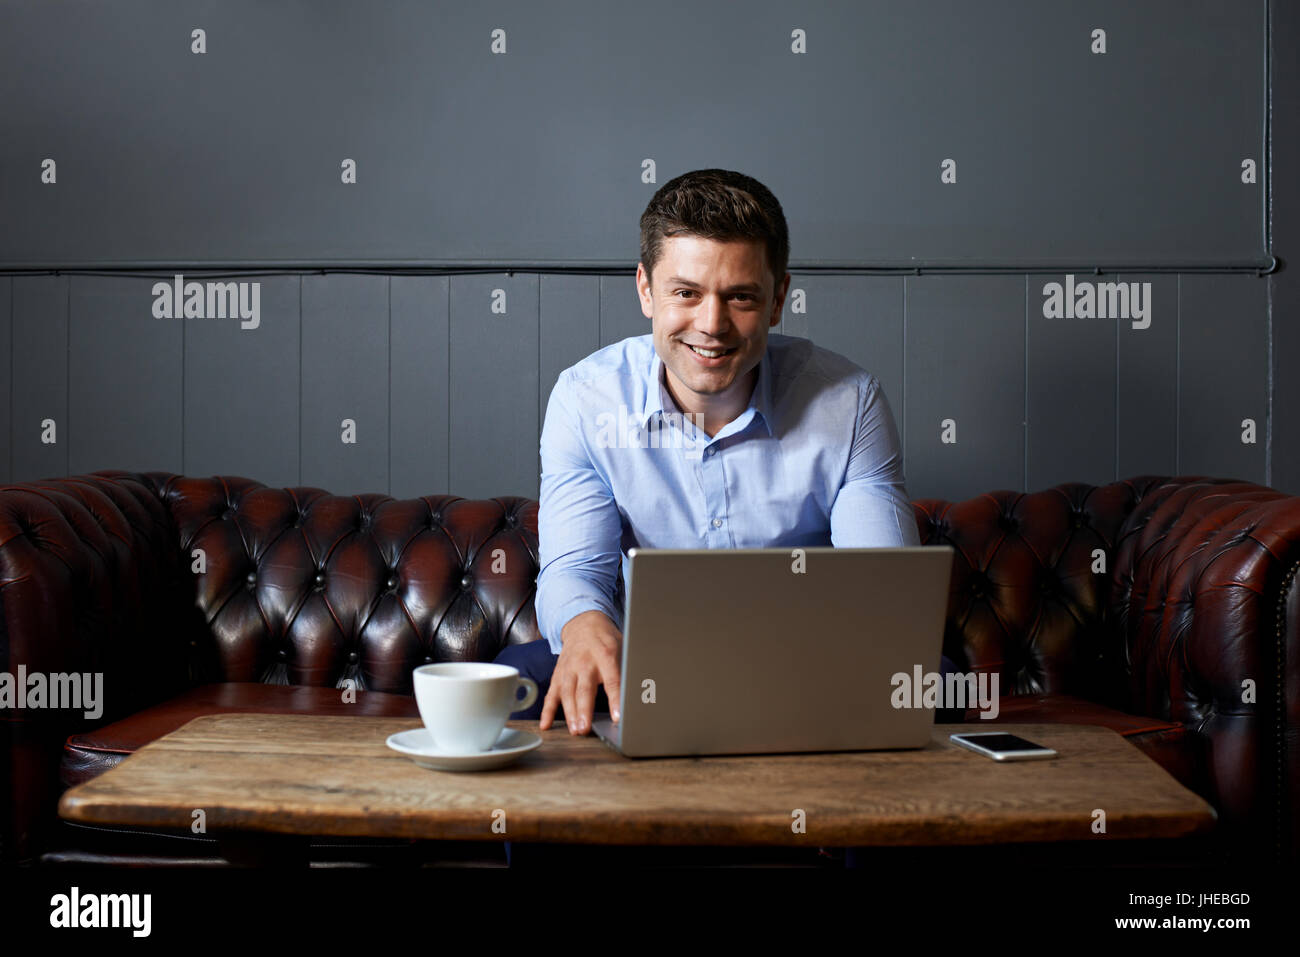 Portrait Of Businessman Working On Laptop In Internet Cafe Photo Stock